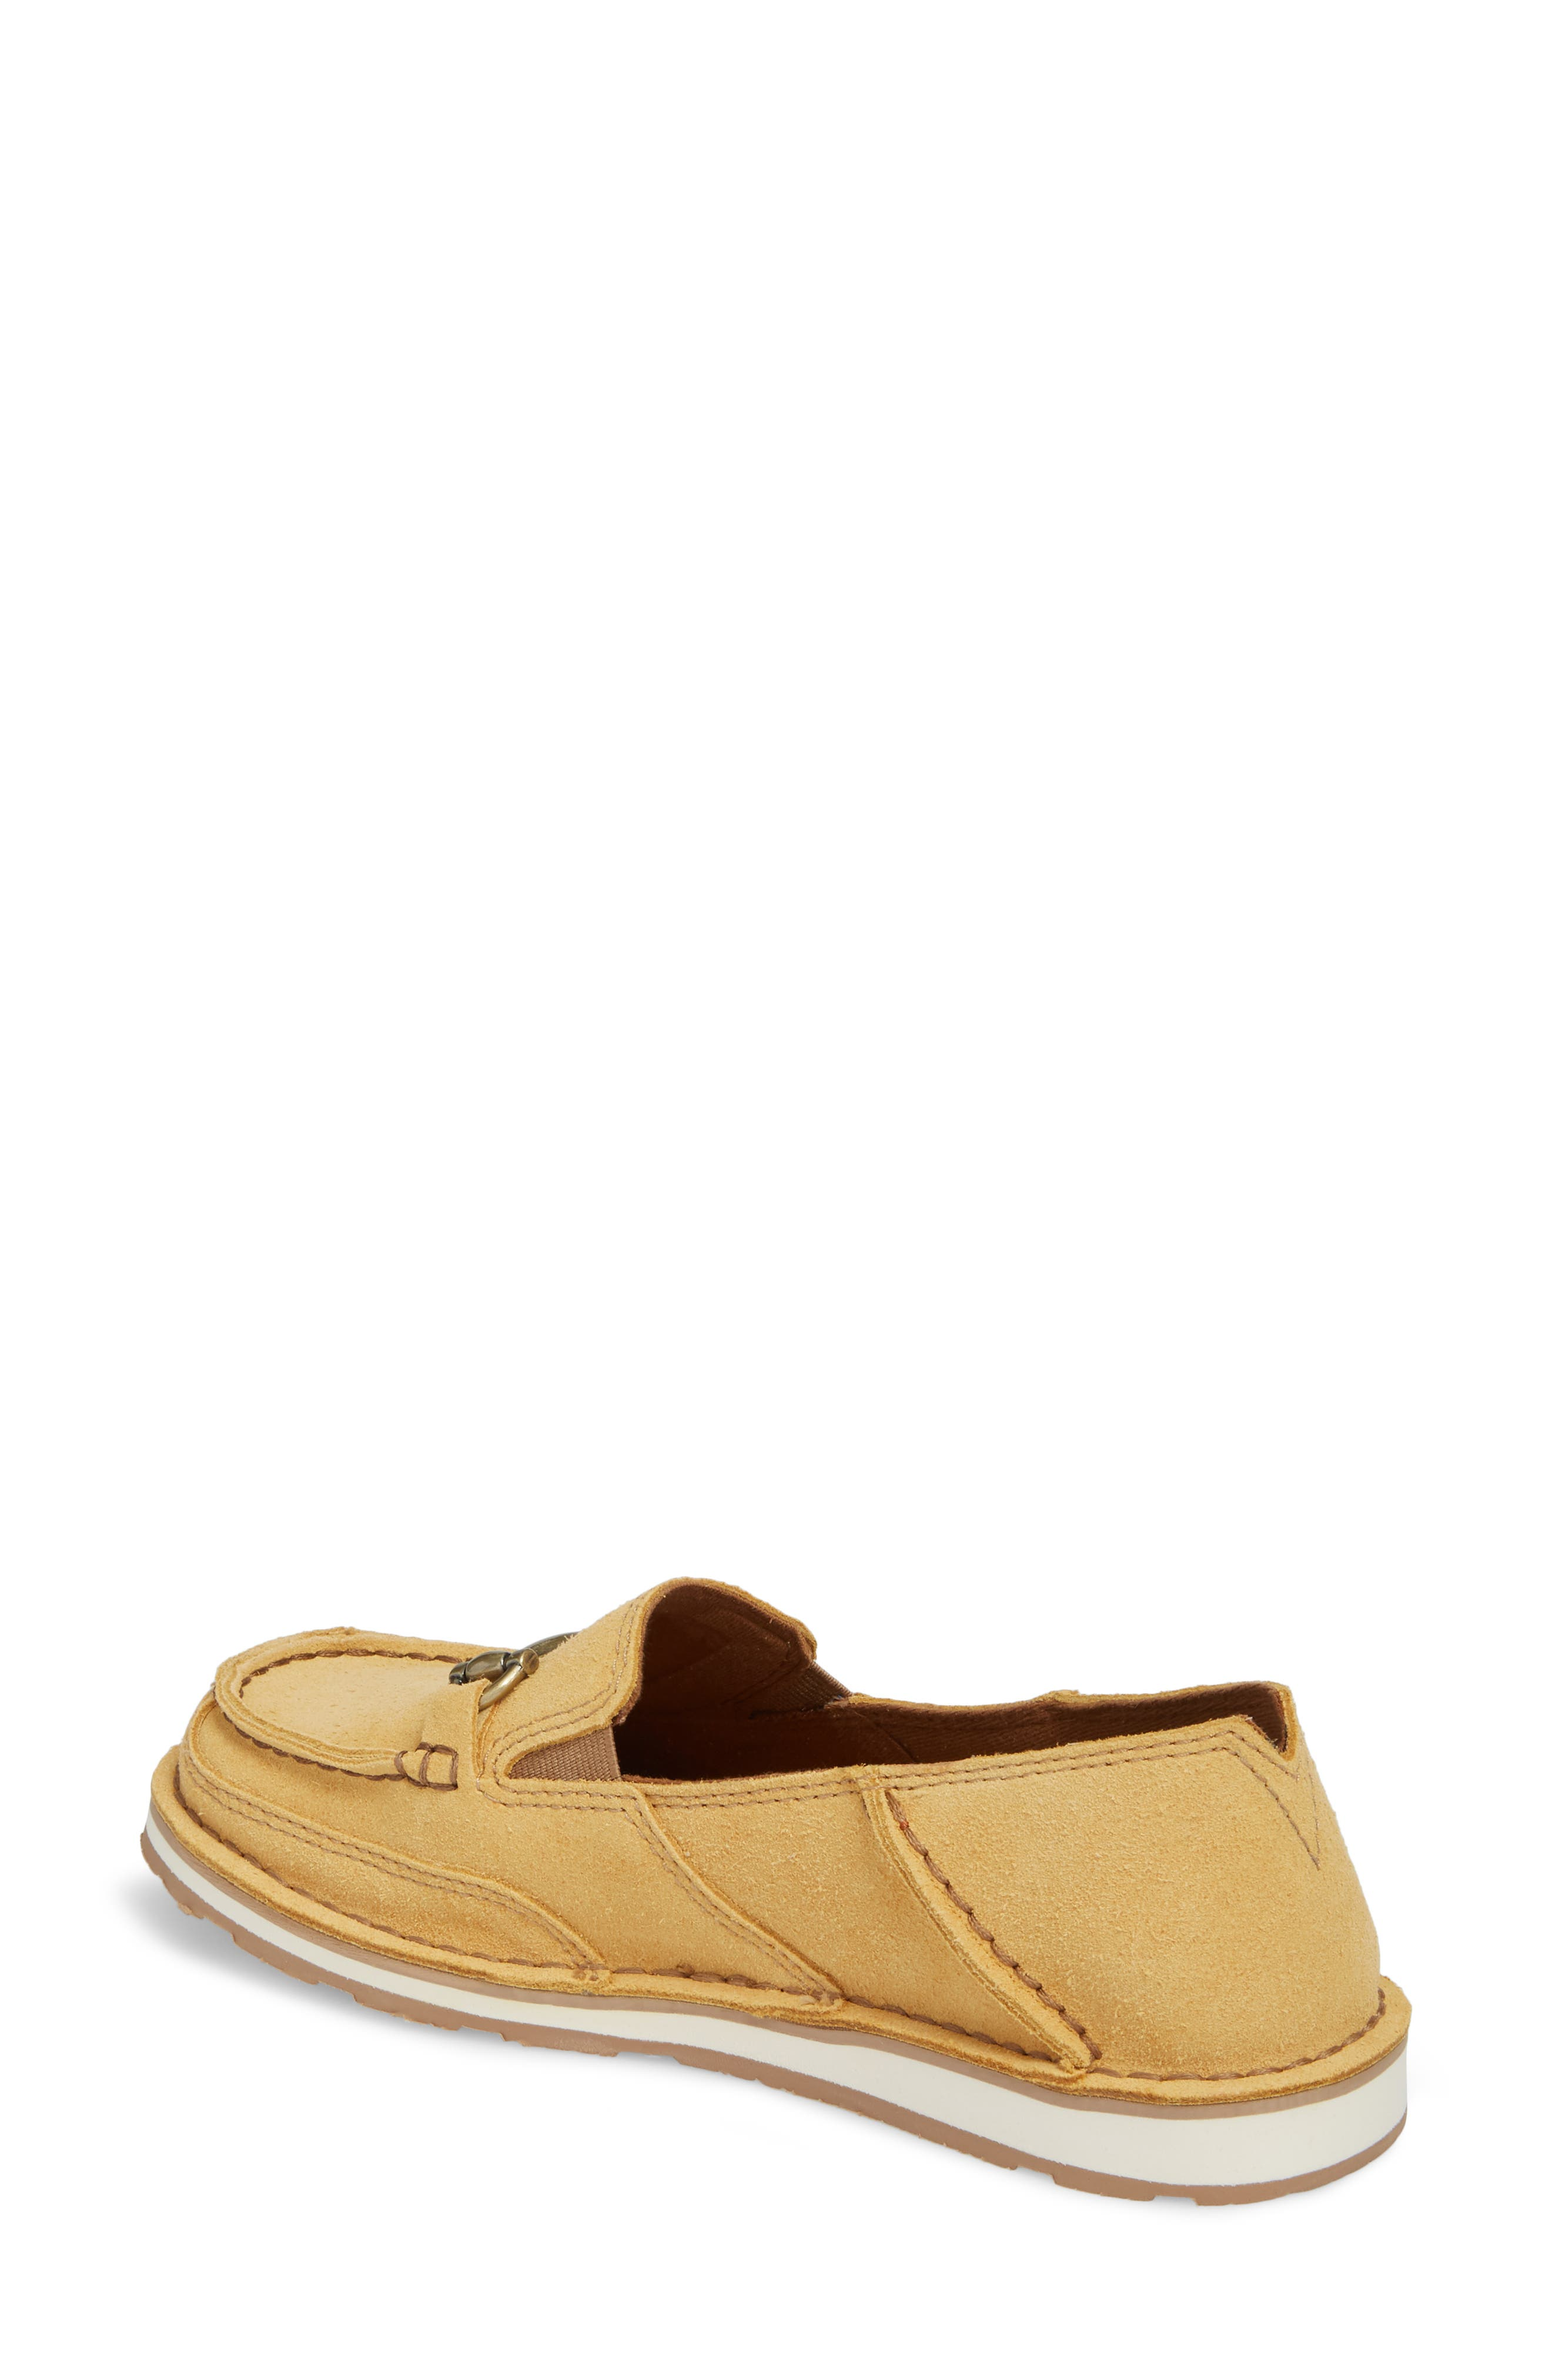 Alternate Image 2  - Ariat Cruiser Castaway Loafer (Women)